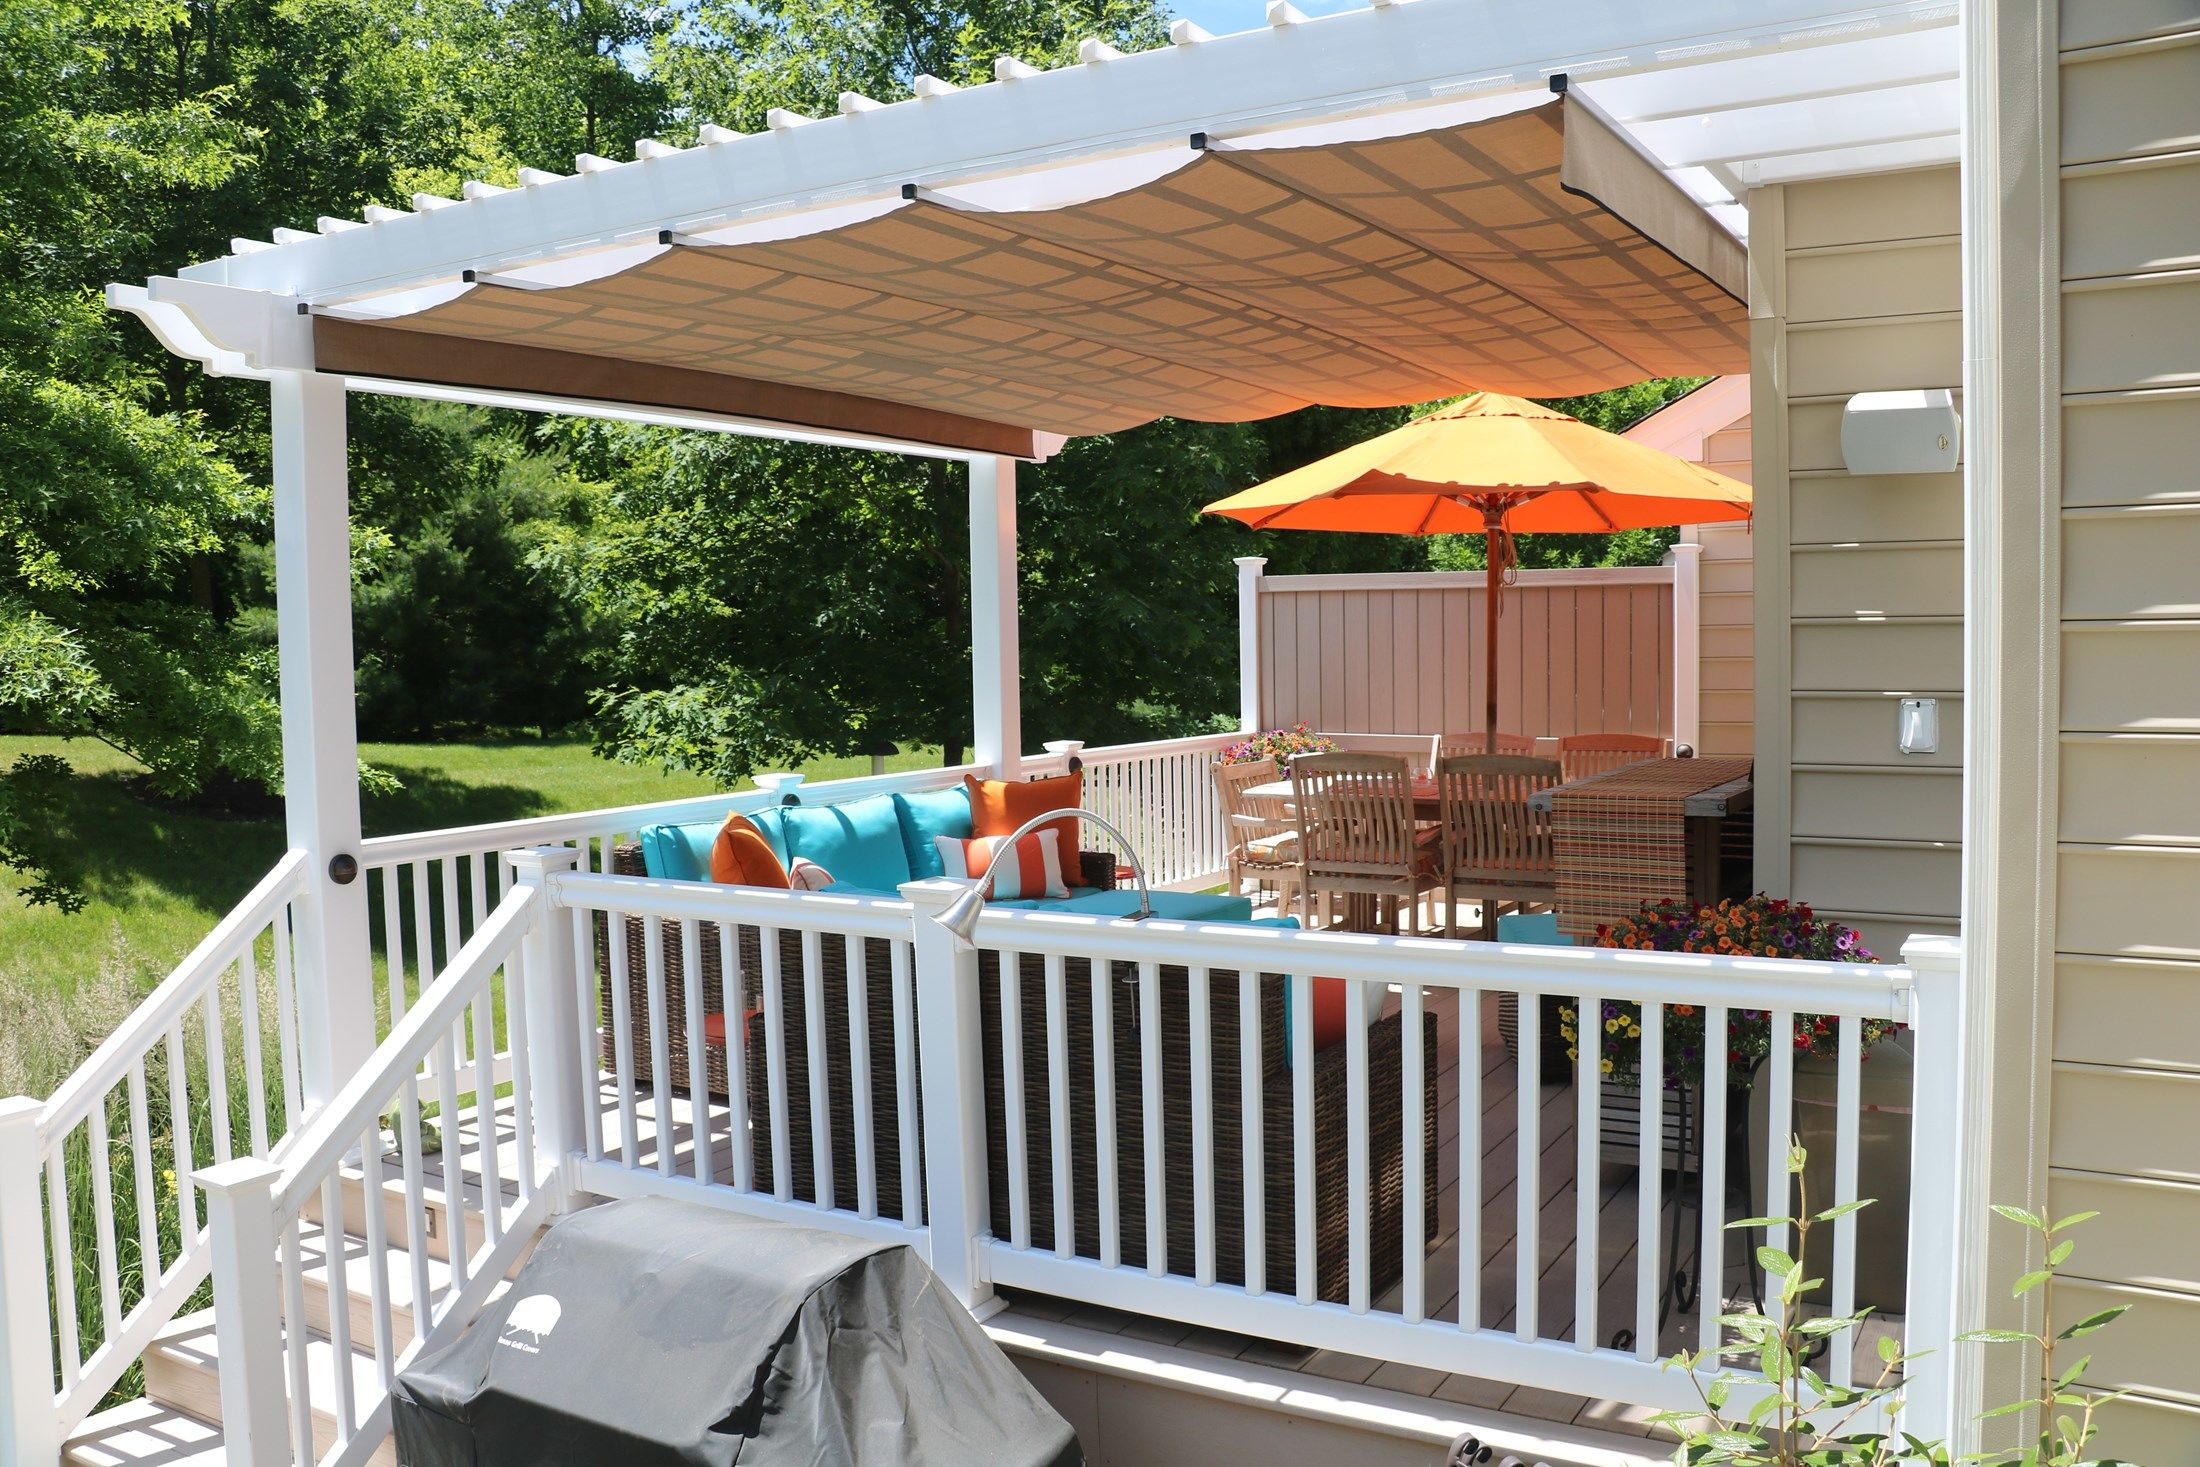 Azek Deck with Vinyl Pergola - Picture 6726